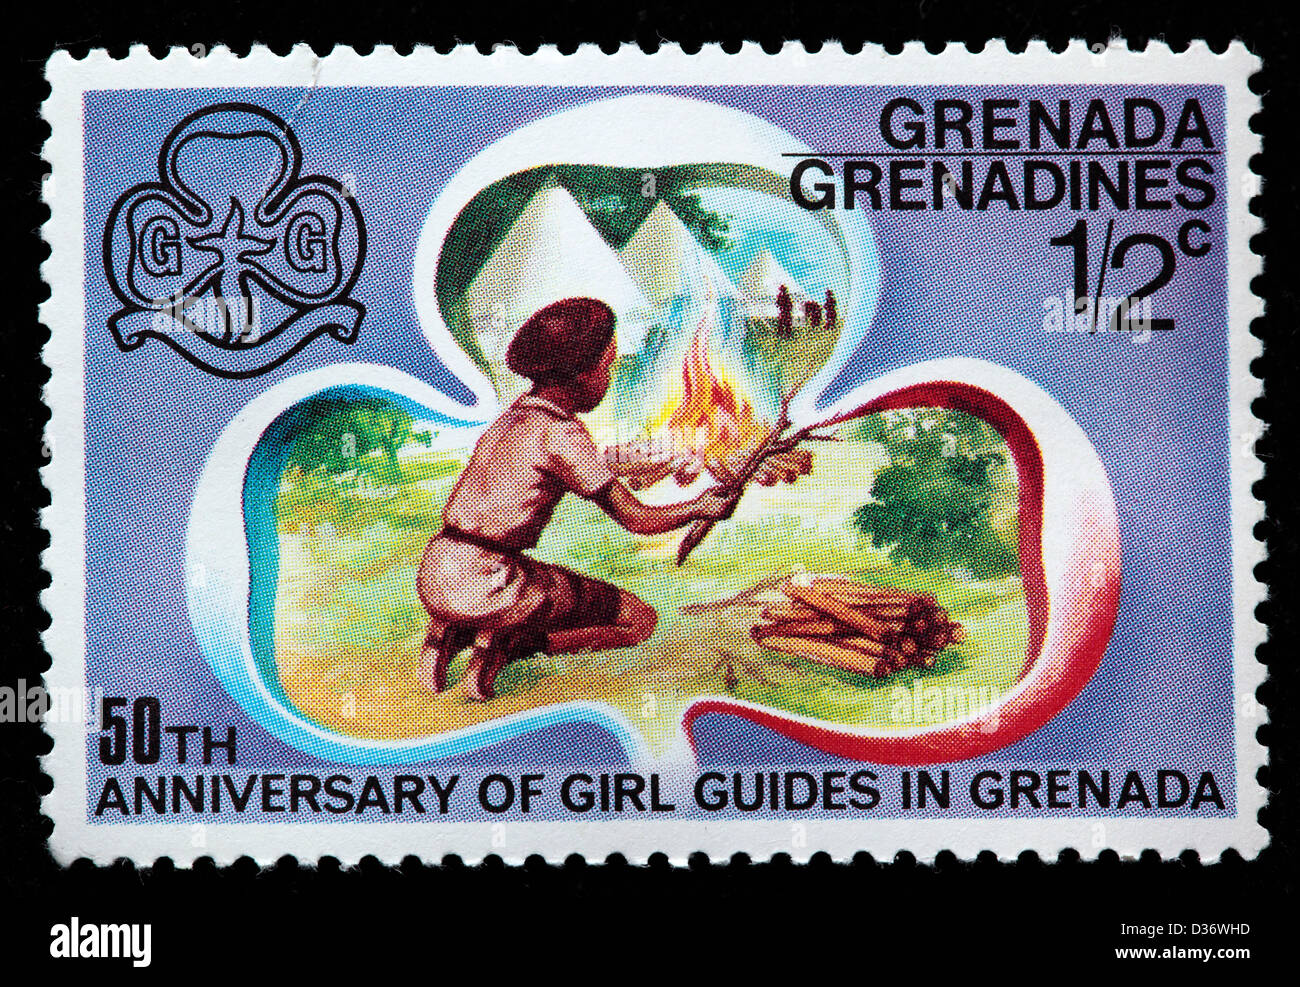 50th Anniversary Of Girl Guides Postage Stamp Grenada Grenadines 1976